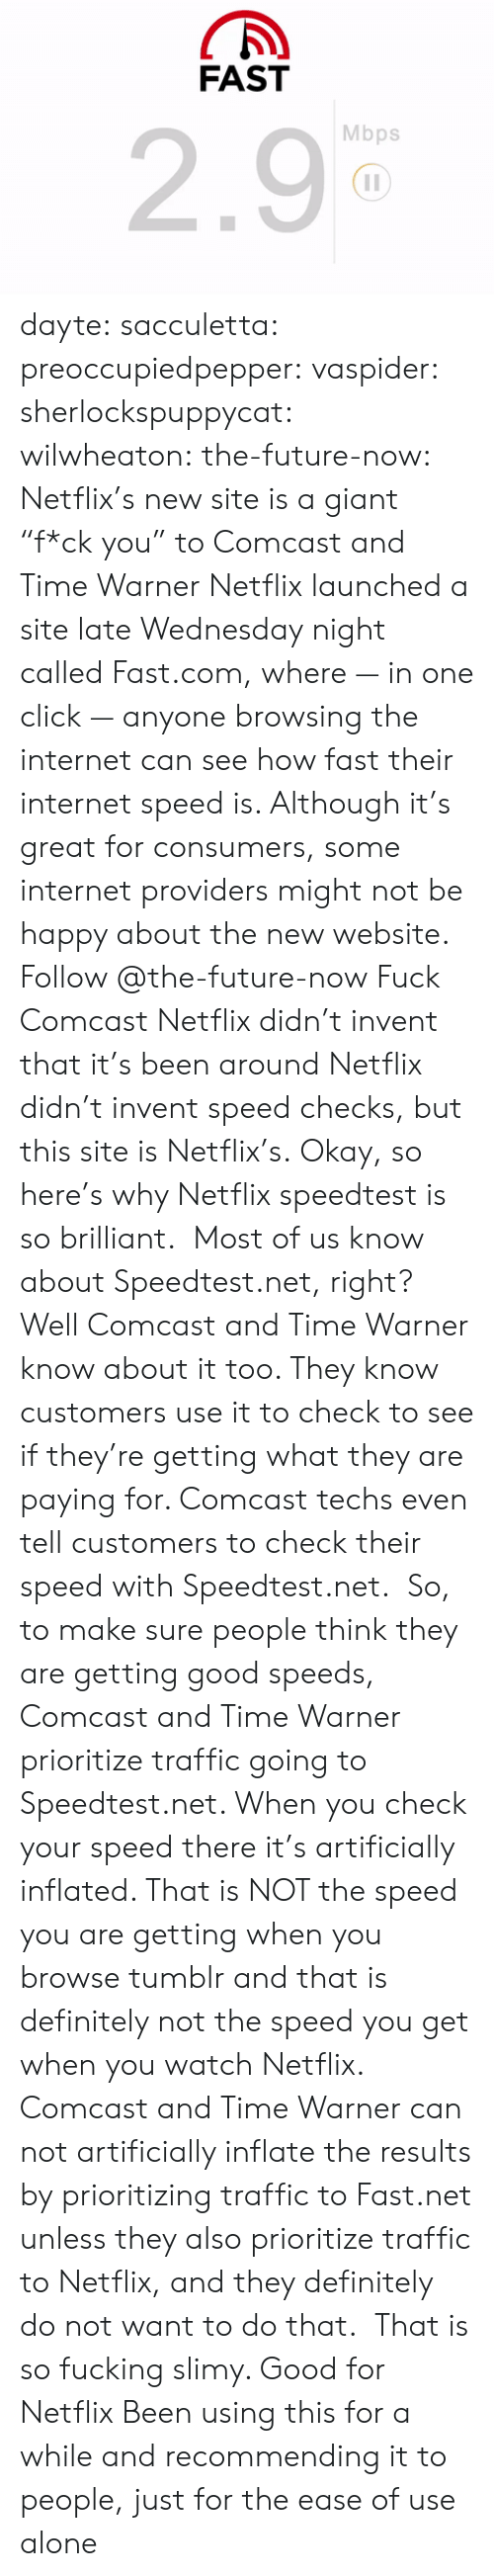 """Wednesday Night: FAST  2.9  Mbps dayte: sacculetta:  preoccupiedpepper:  vaspider:  sherlockspuppycat:  wilwheaton:  the-future-now:  Netflix's new site is a giant """"f*ck you"""" to Comcast and Time Warner Netflixlauncheda site late Wednesday night calledFast.com, where — in one click — anyone browsing the internet can see how fast their internet speed is. Although it's great for consumers, some internet providers might not be happy about the new website. Follow @the-future-now  Fuck Comcast  Netflix didn't invent that it's been around  Netflix didn't invent speed checks, but this site is Netflix's.  Okay, so here's why Netflix speedtest is so brilliant. Most of us know about Speedtest.net, right? Well Comcast and Time Warner know about it too. They know customers use it to check to see if they're getting what they are paying for. Comcast techs even tell customers to check their speed with Speedtest.net. So, to make sure people think they are getting good speeds, Comcast and Time Warner prioritize traffic going to Speedtest.net. When you check your speed there it's artificially inflated. That is NOT the speed you are getting when you browse tumblr and that is definitely not the speed you get when you watch Netflix. Comcast and Time Warner can not artificially inflate the results by prioritizing traffic to Fast.net unless they also prioritize traffic to Netflix, and they definitely do not want to do that.  That is so fucking slimy. Good for Netflix   Been using this for a while and recommending it to people, just for the ease of use alone"""